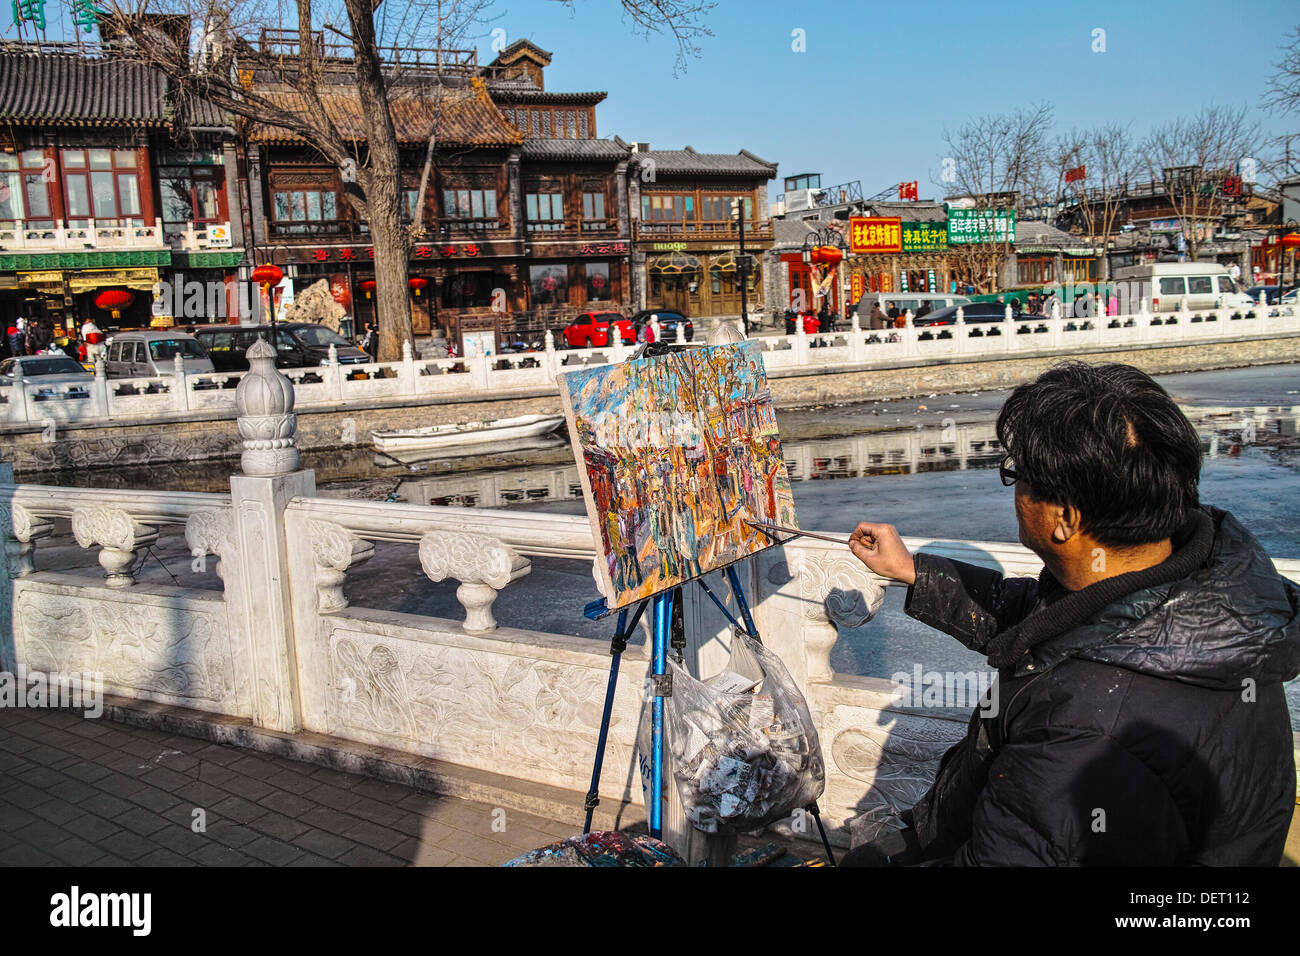 A Chinese man draw a oil painting at Shichahai, Beijing - Stock Image